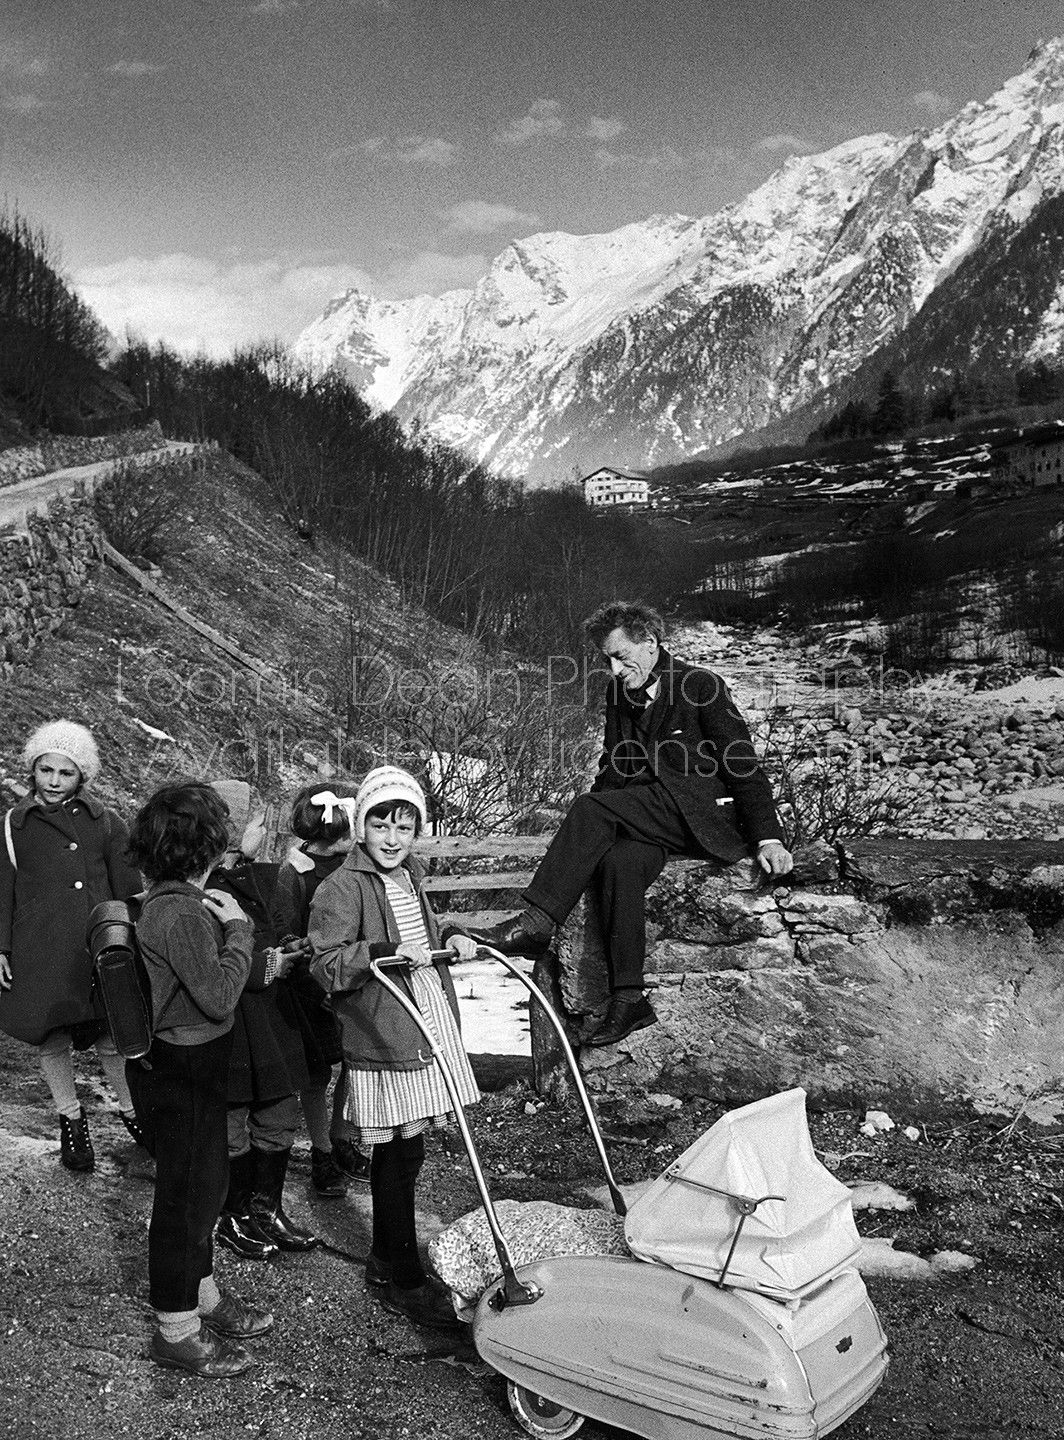 Sculptor Alberto Giacometti stopping to talk with children during a walk up the valley near his home.